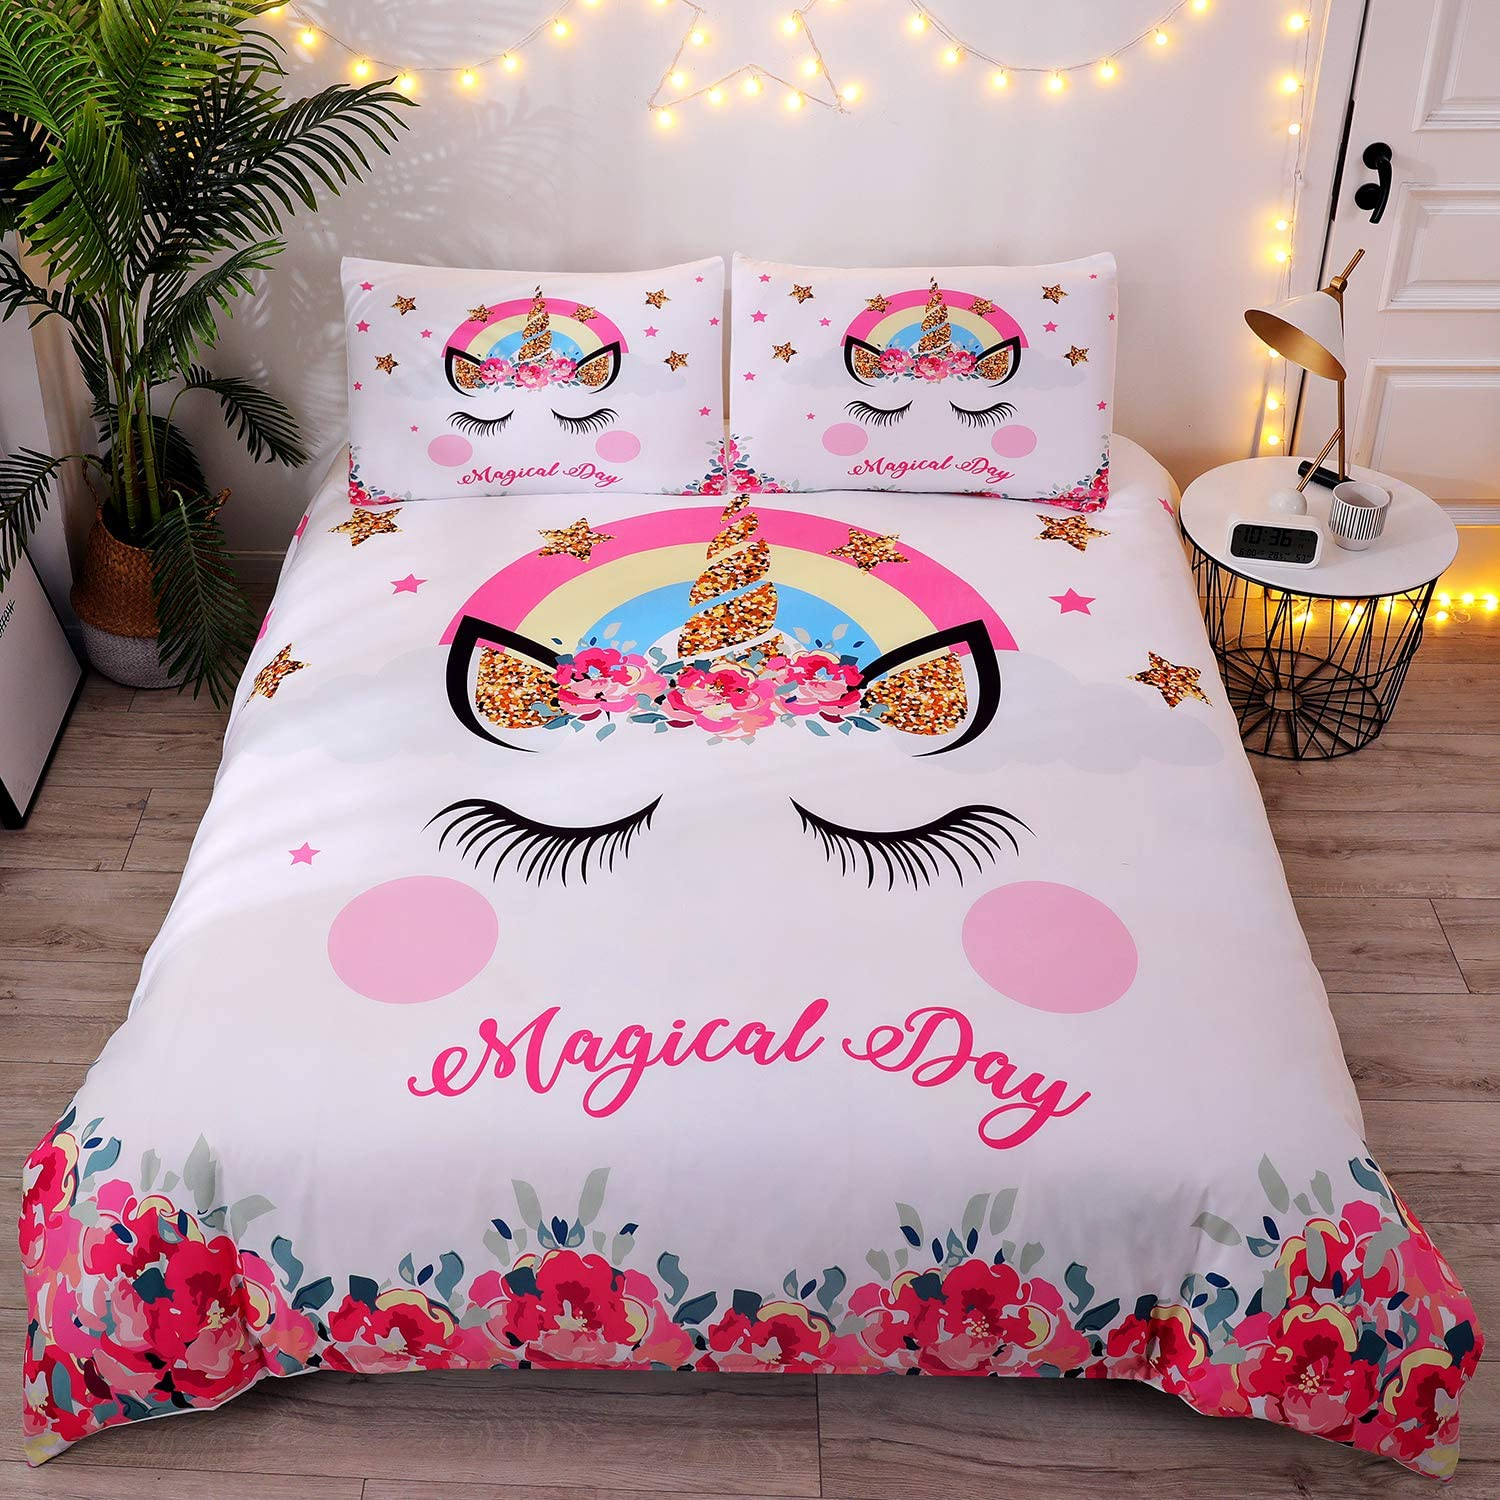 DEERHOME Cute Flower Unicorn Kids Bedding White Pink Golden Ears Unicorn 3 Pieces Bedding Duvet Cover Sets Gifts for Teens and Girls(Twin)